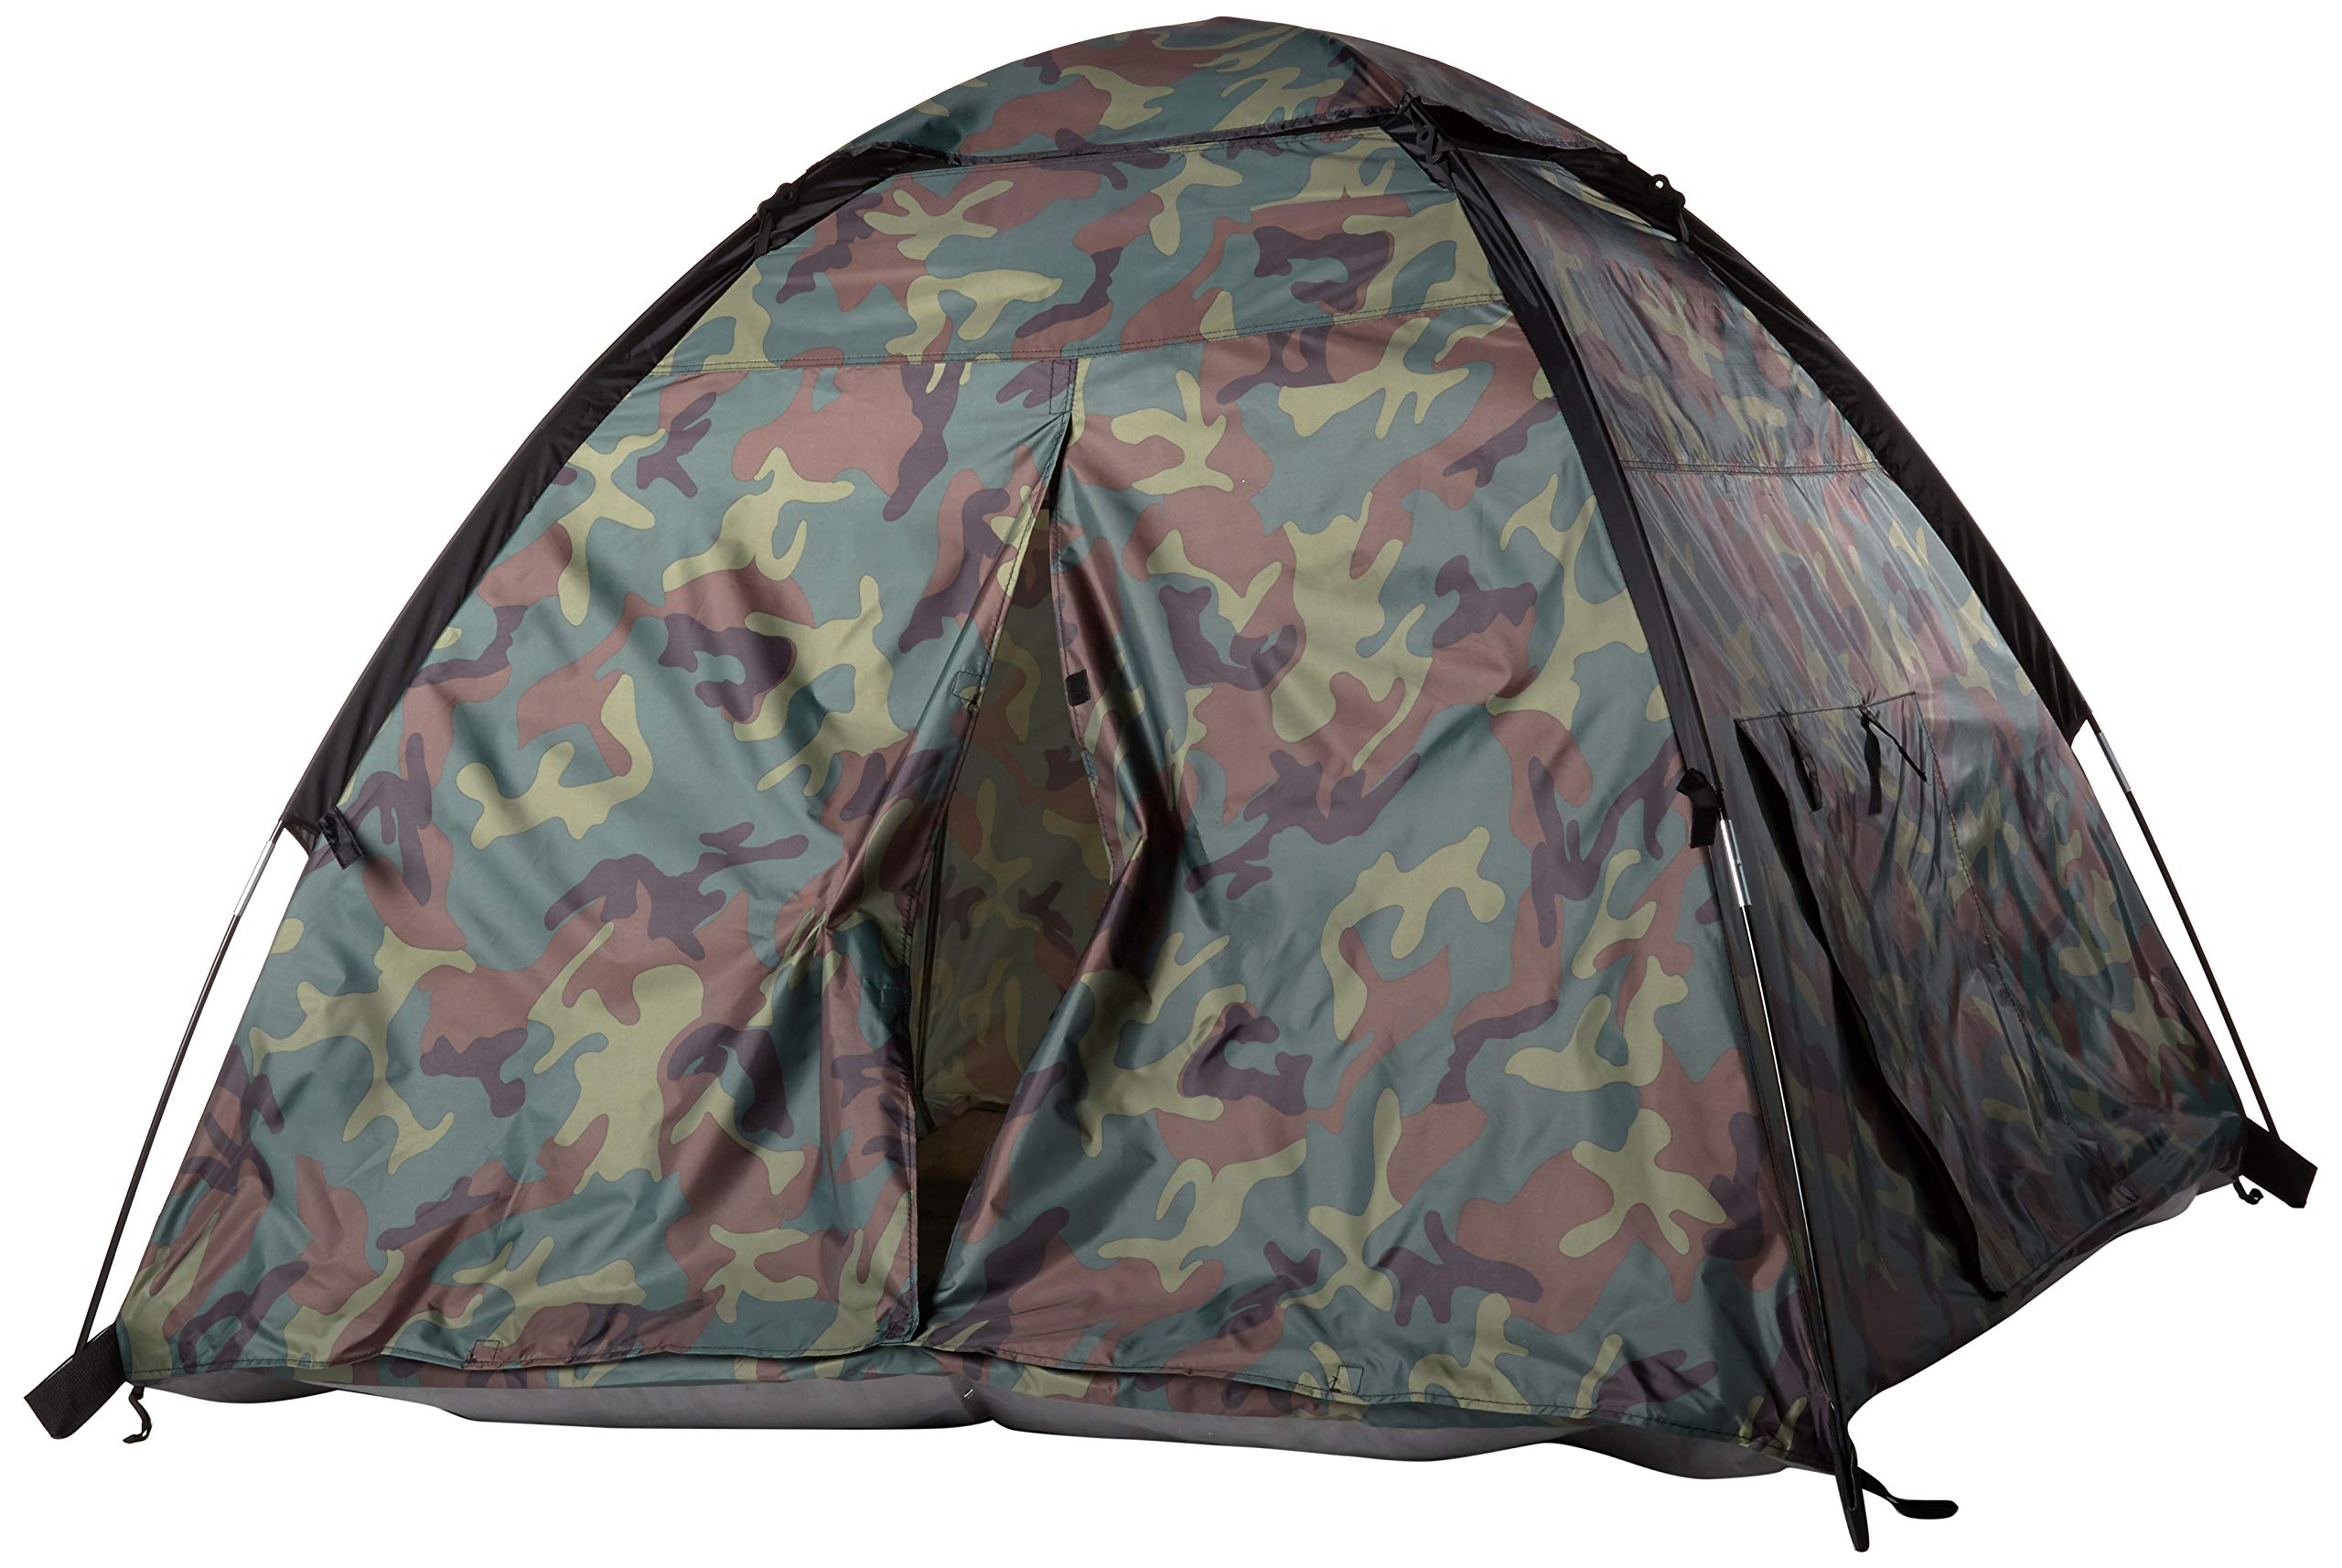 NARMAY Play Tent Camouflage Dome Tent for Kids Indoor / Outdoor Fun - 60 x 60 x 44 inch by NARMAY (Image #1)